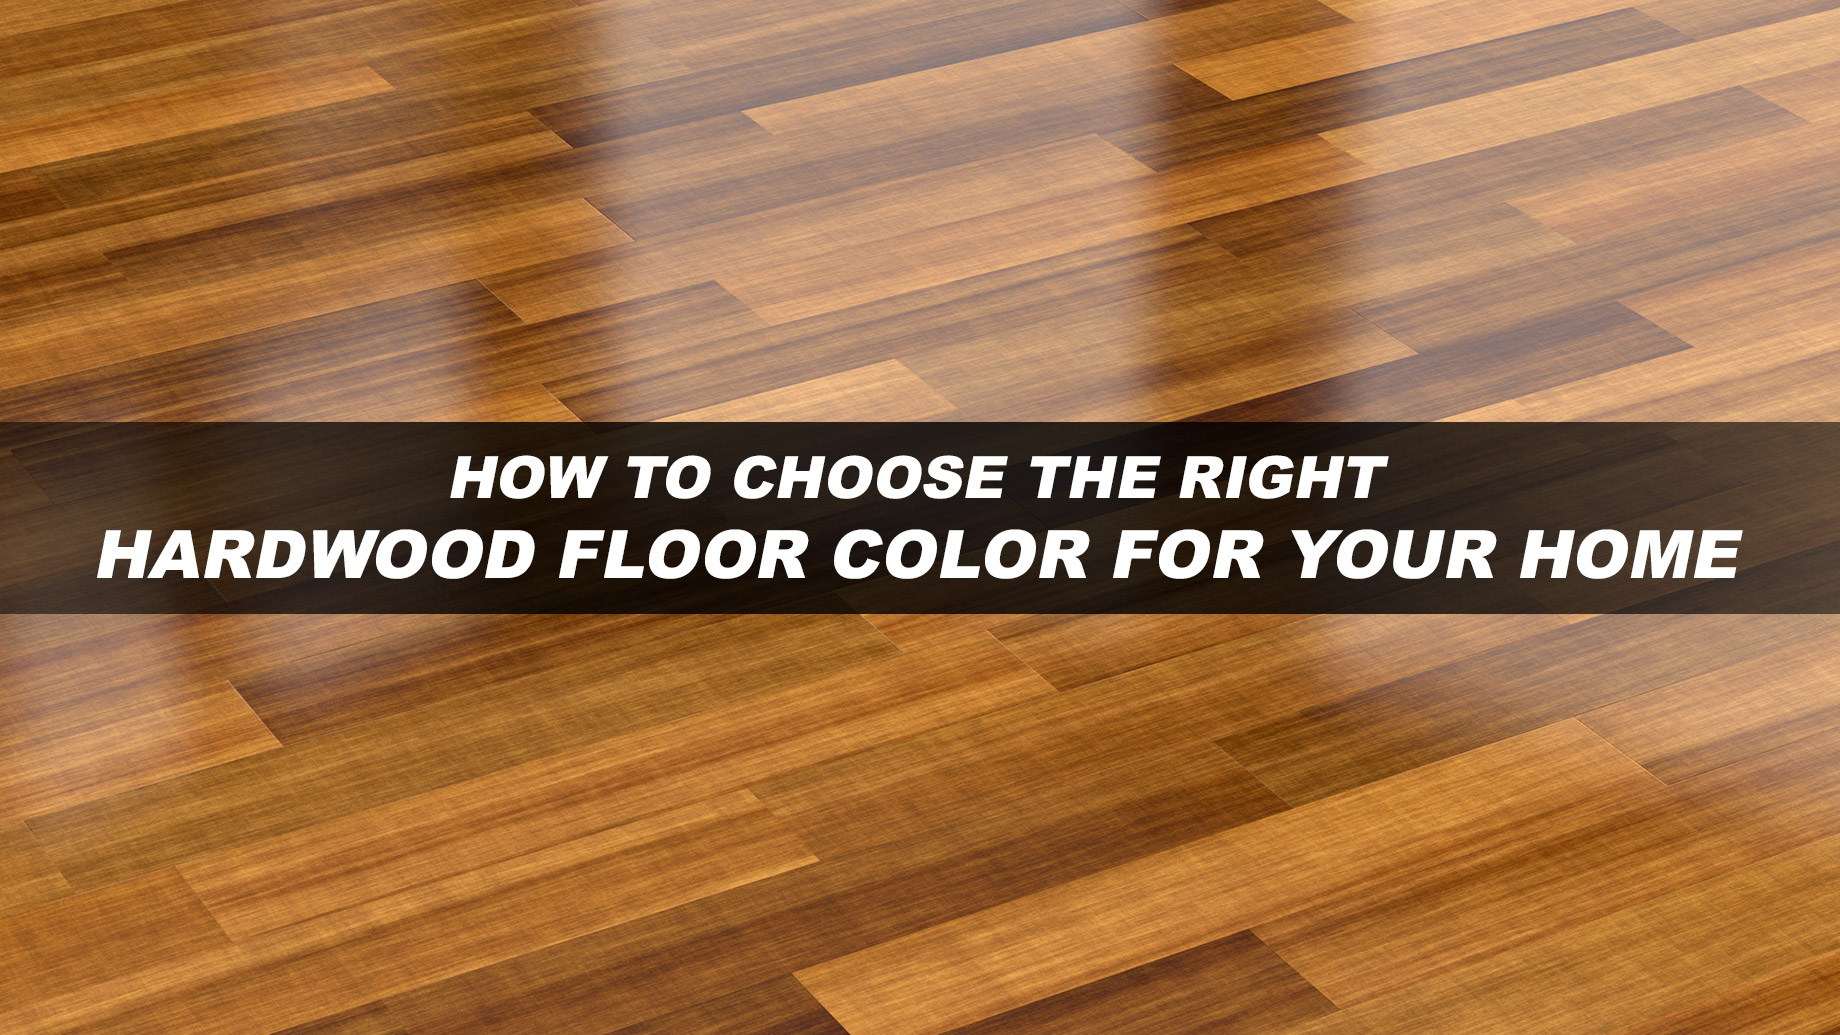 How to Choose the Right Hardwood Floor Color For Your Home